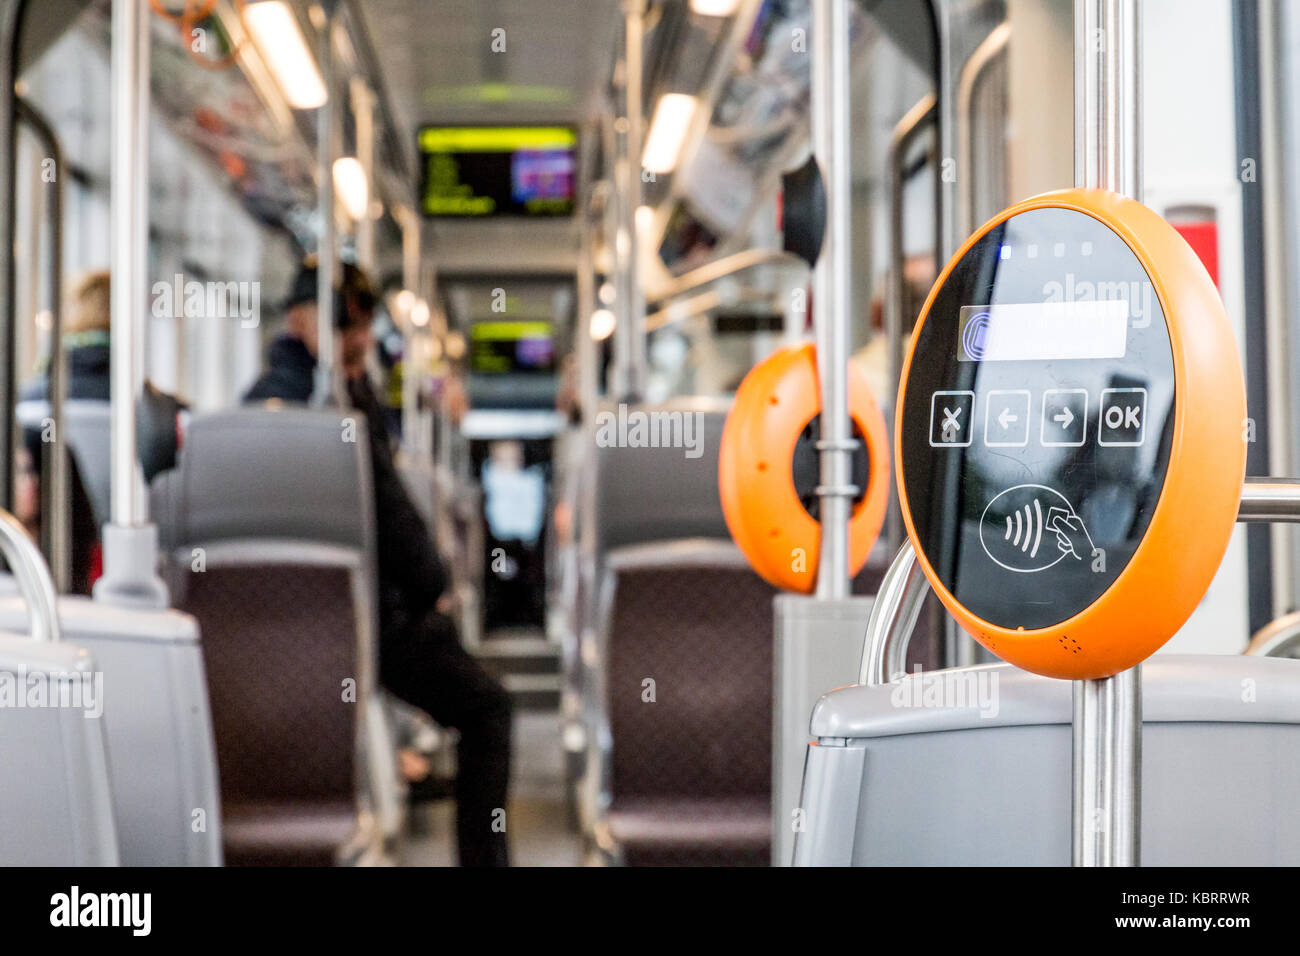 Orange modern magnetic ticket validator Stock Photo